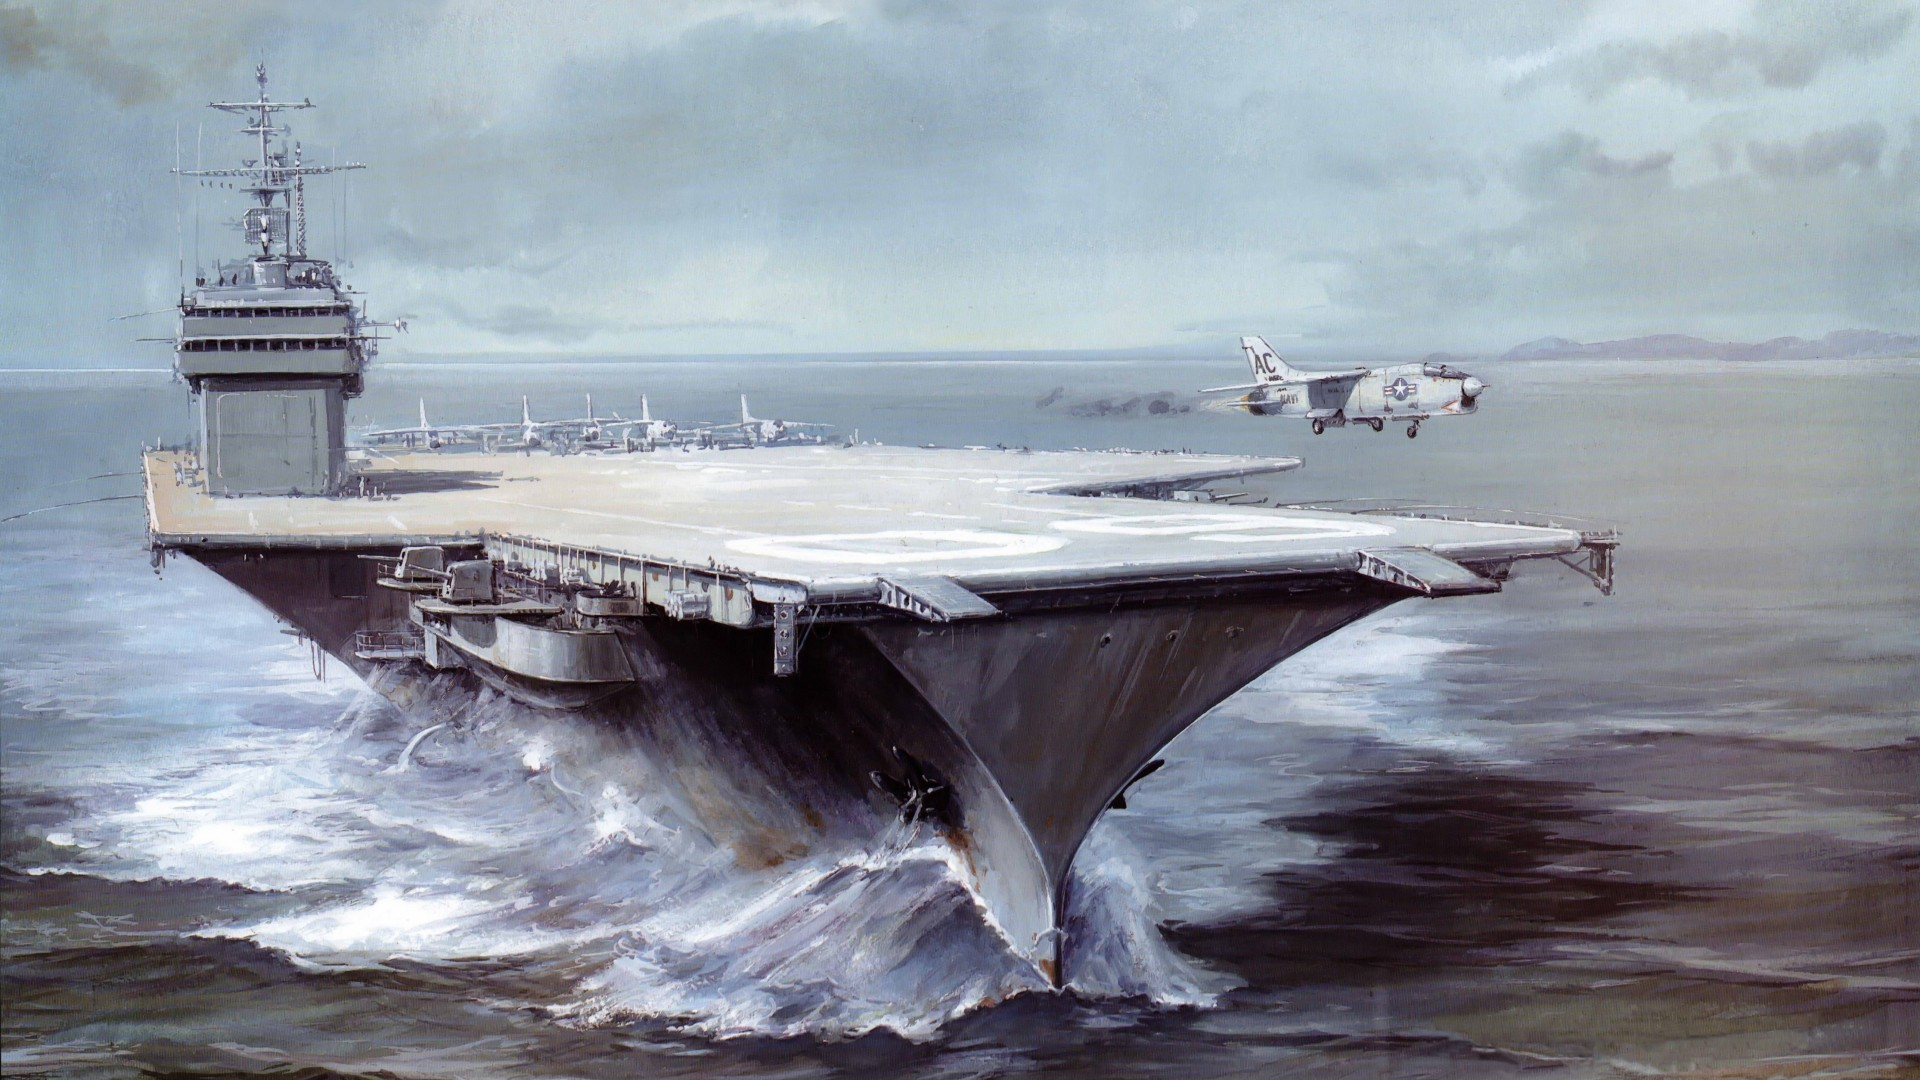 Саратога, авианосец, рисунок, арт, USS Saratoga, CVA 60, CVB-60, carrier, Forrestal-class, aircraft, art, painting (horizontal)